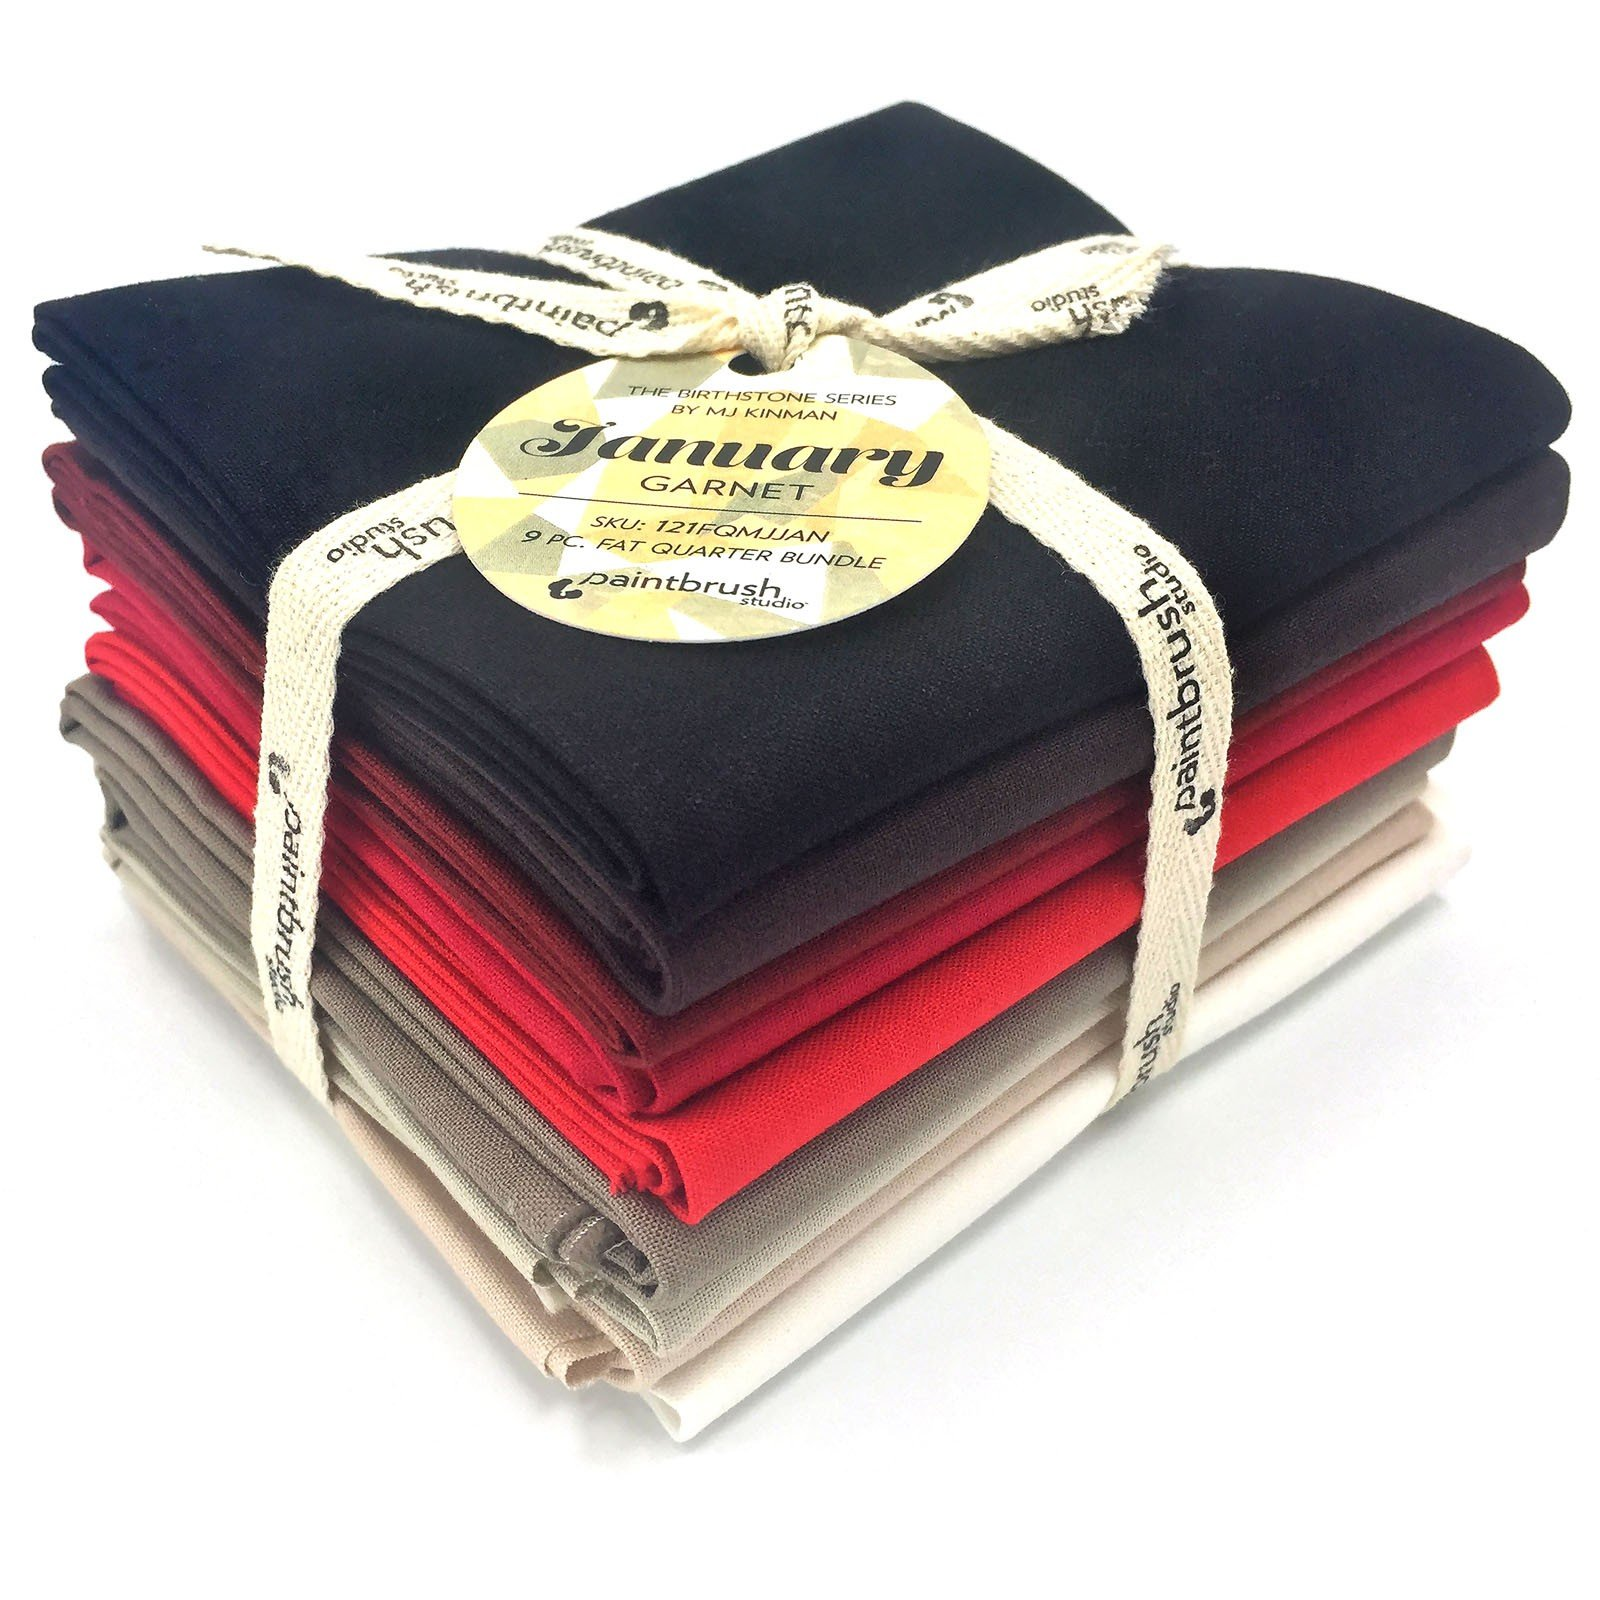 MJ Kinman Birthstone Fat Quarter Bundles (Order button)